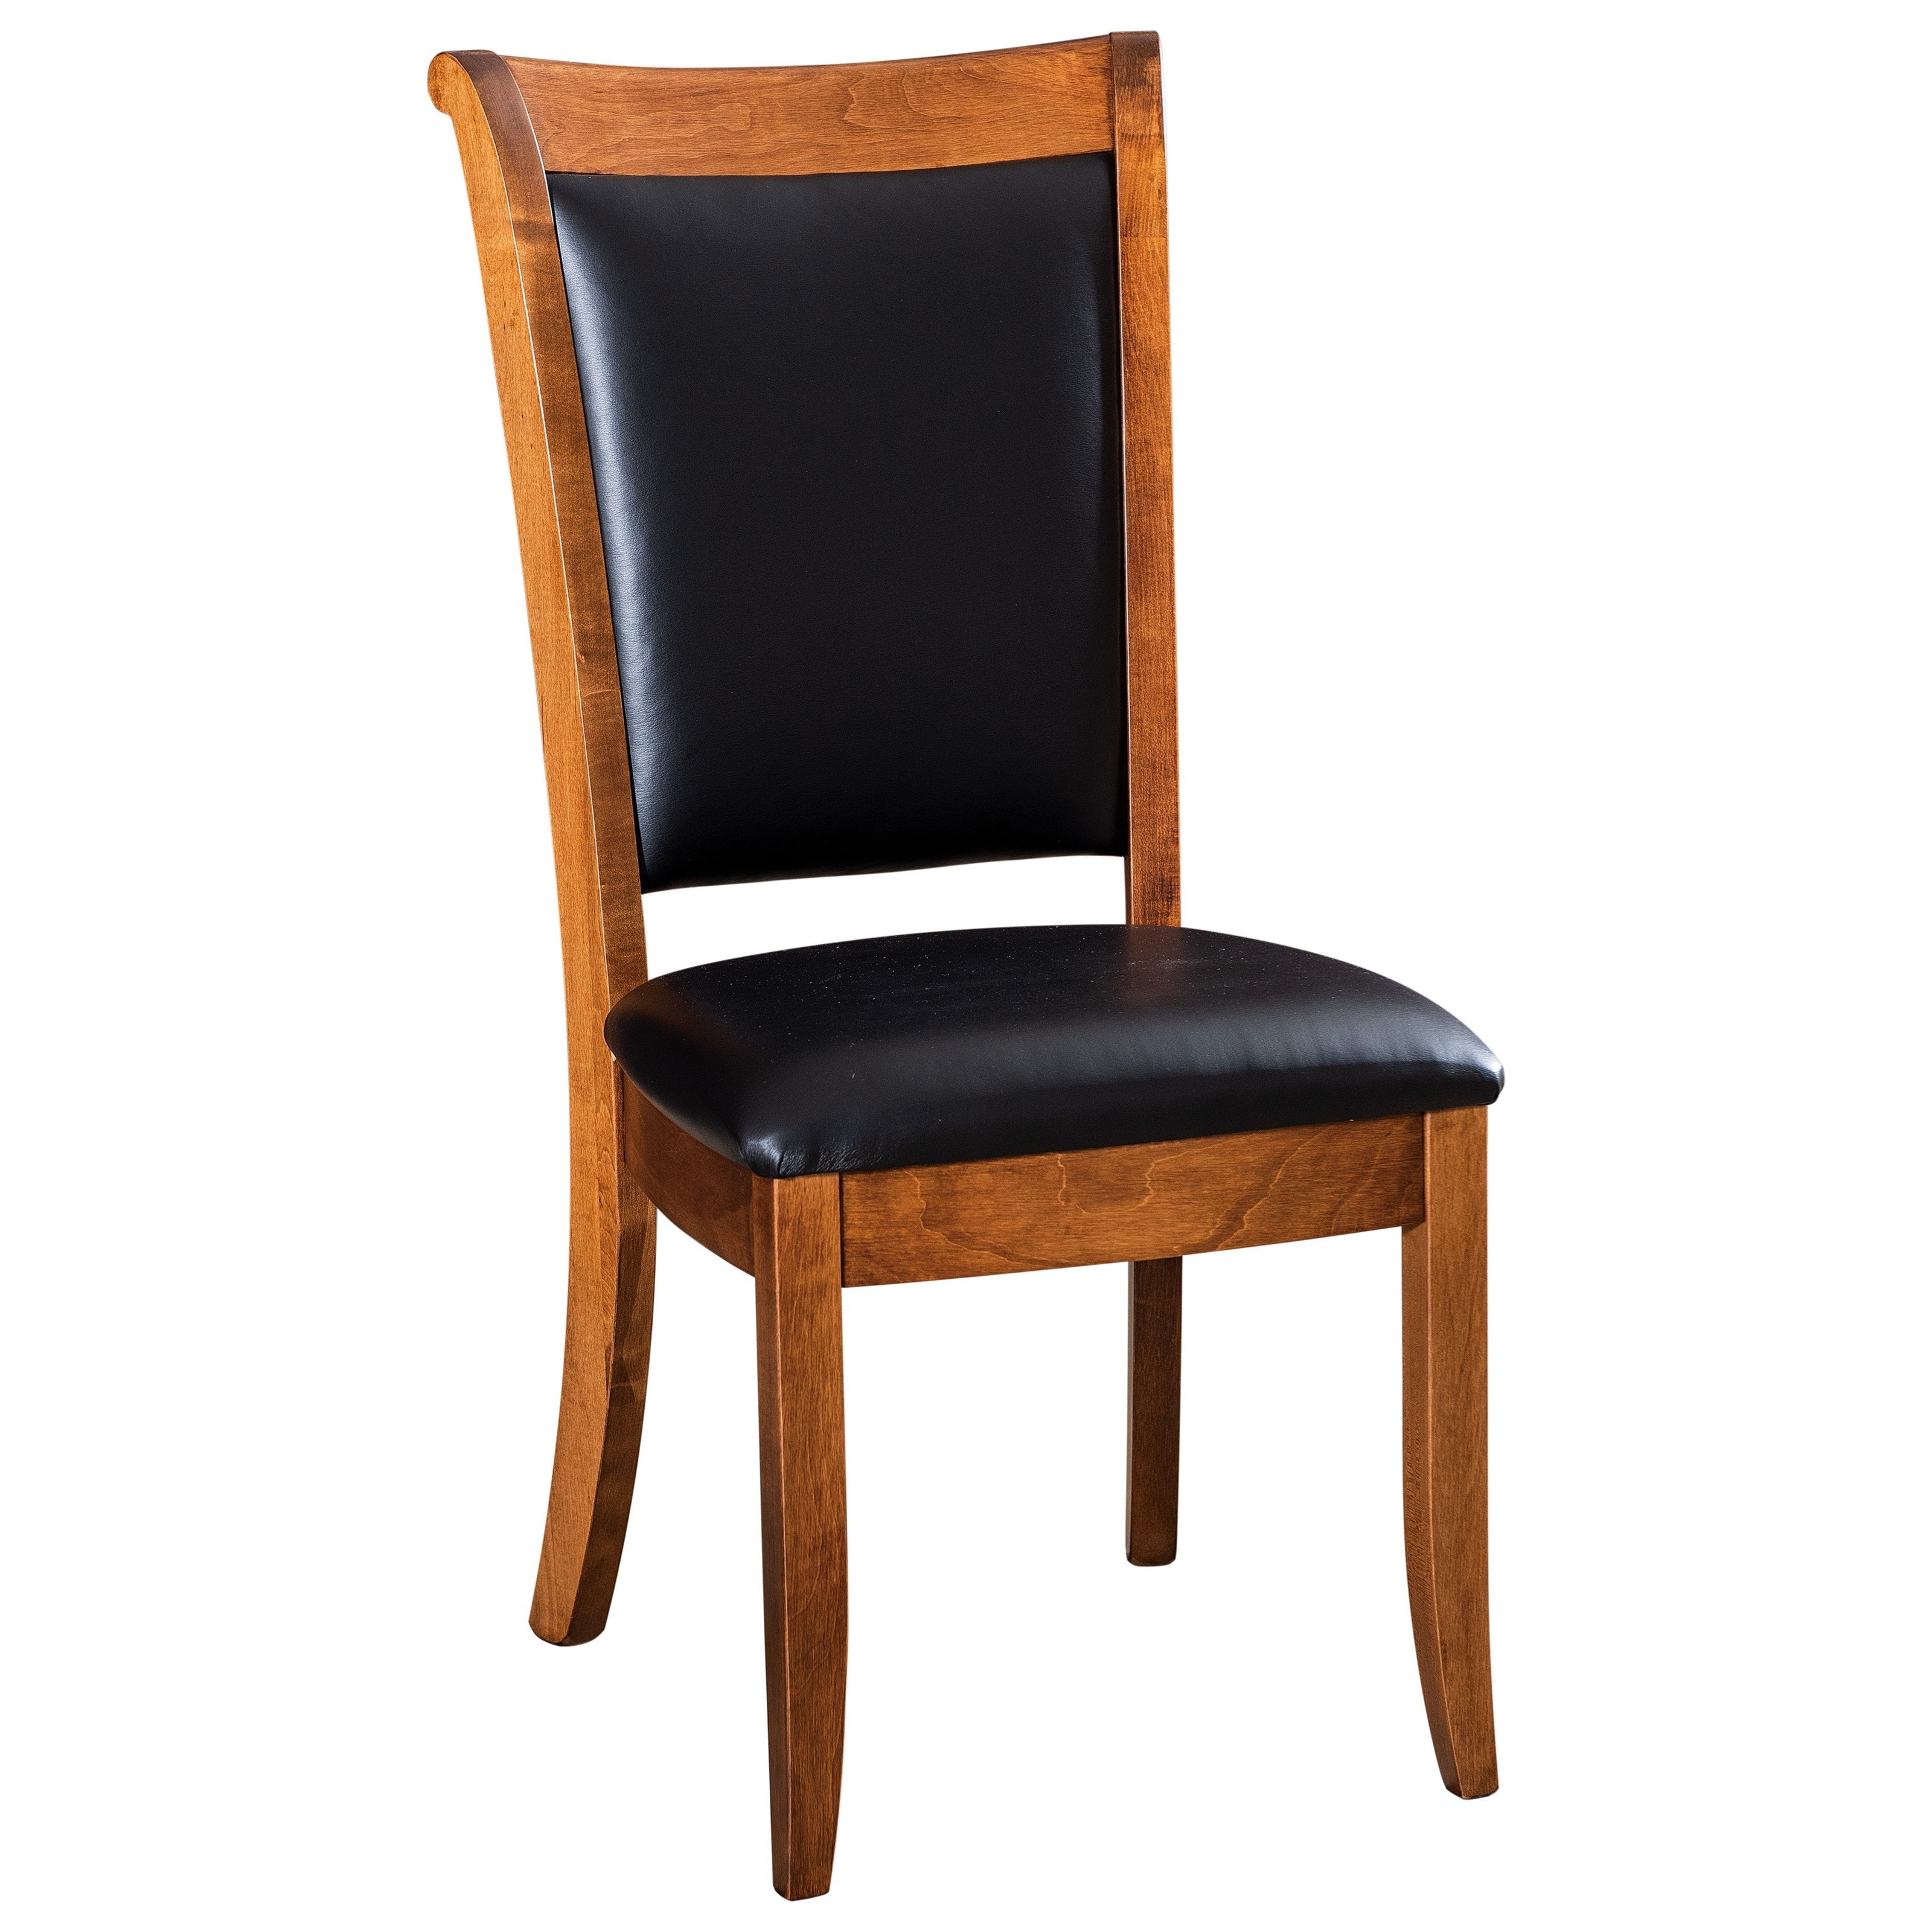 Kimberly Customizable Solid Wood Dining Side Chair by F&N Woodworking at Saugerties Furniture Mart